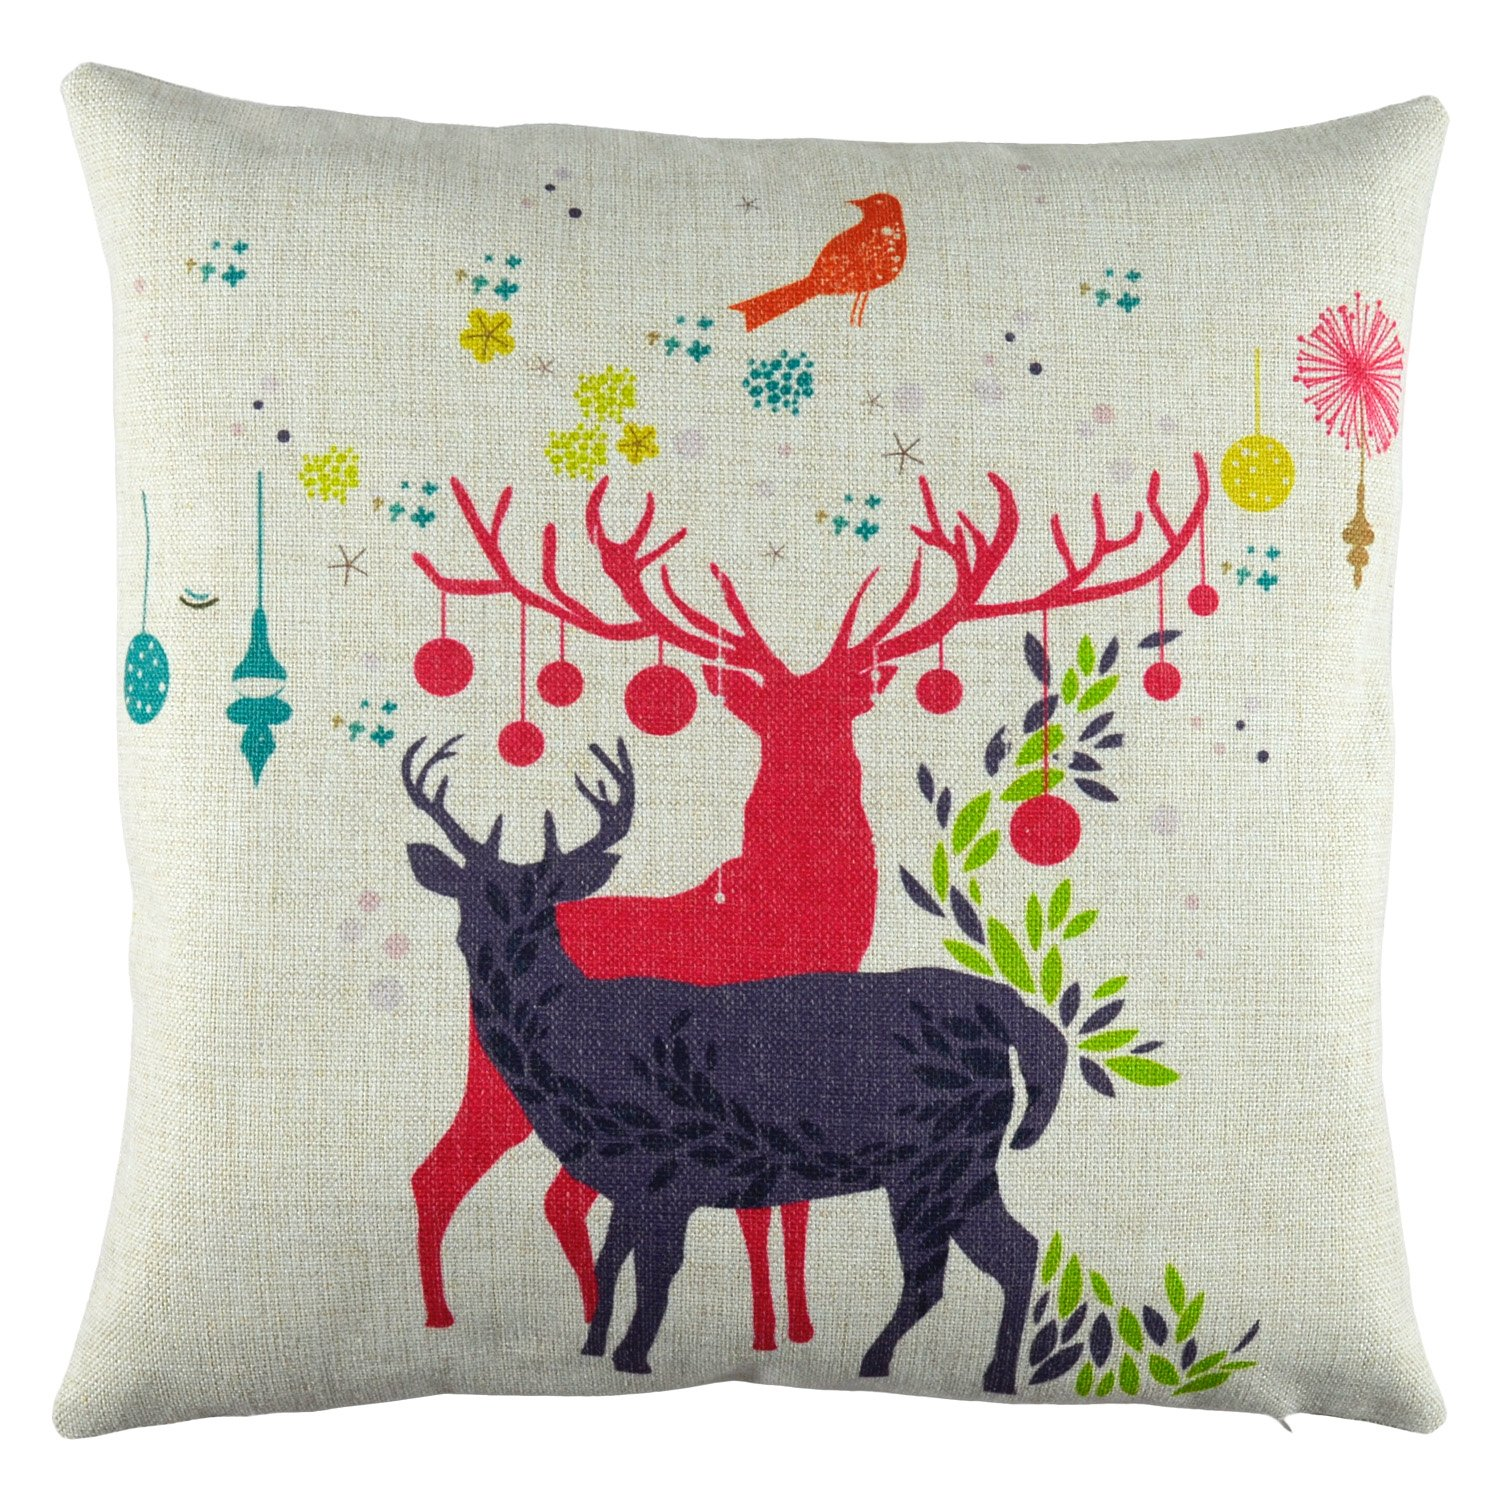 Cute Little Reindeer Couple Christmas Holiday Theme Cotton Linen Decorative Square Cushion Throw Pillow Cover